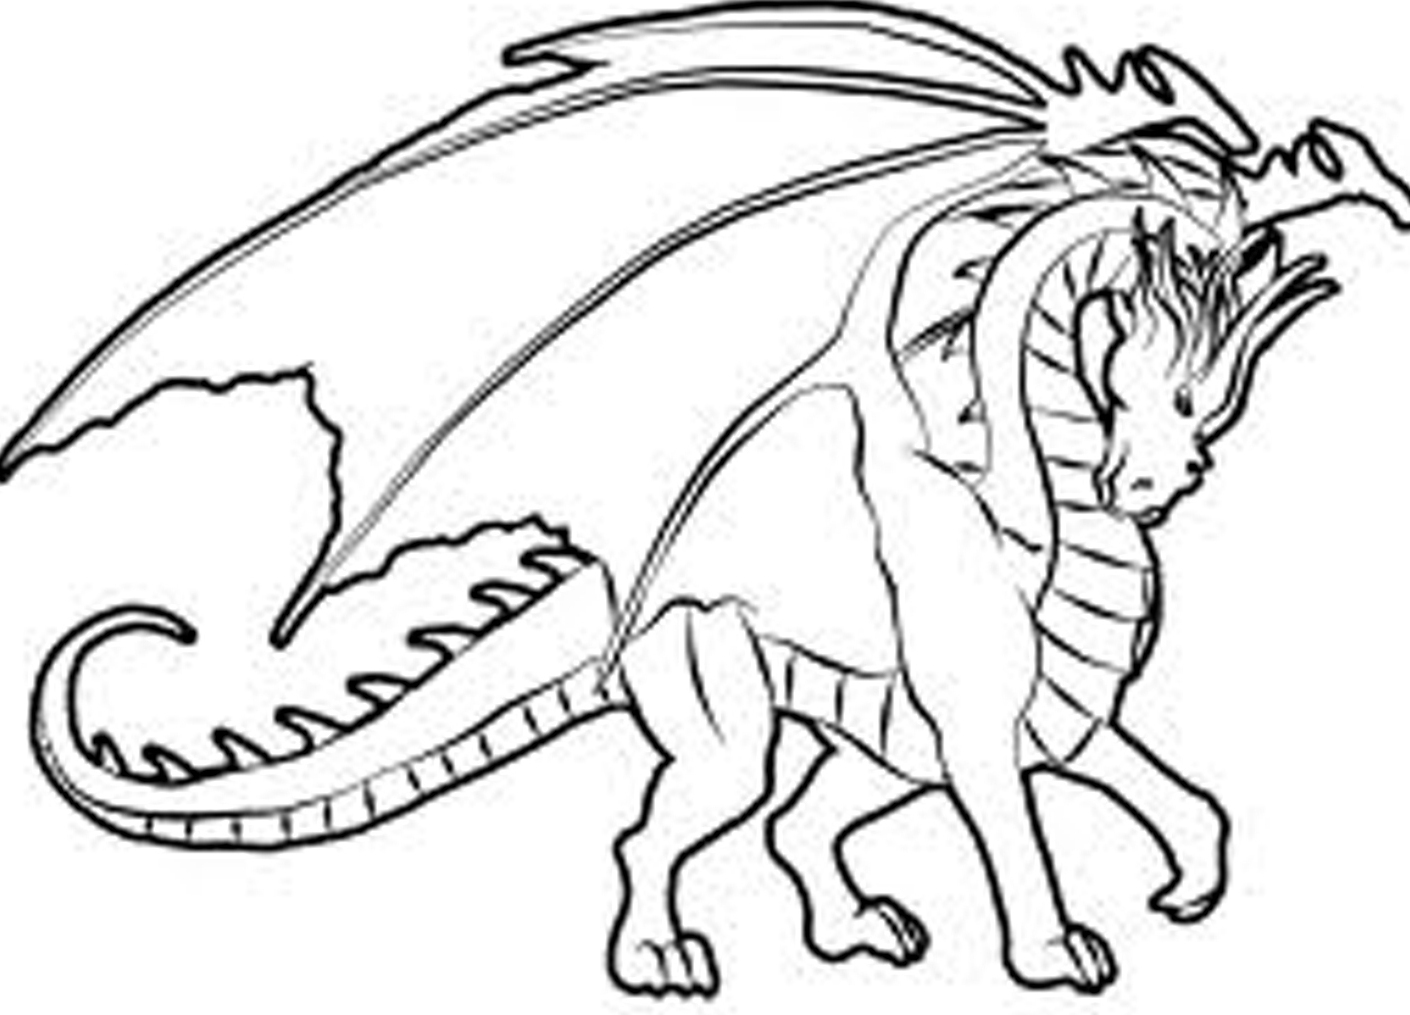 1410x1015 Hard Coloring Pages Of Dragons Great Idea For The Chil'ren